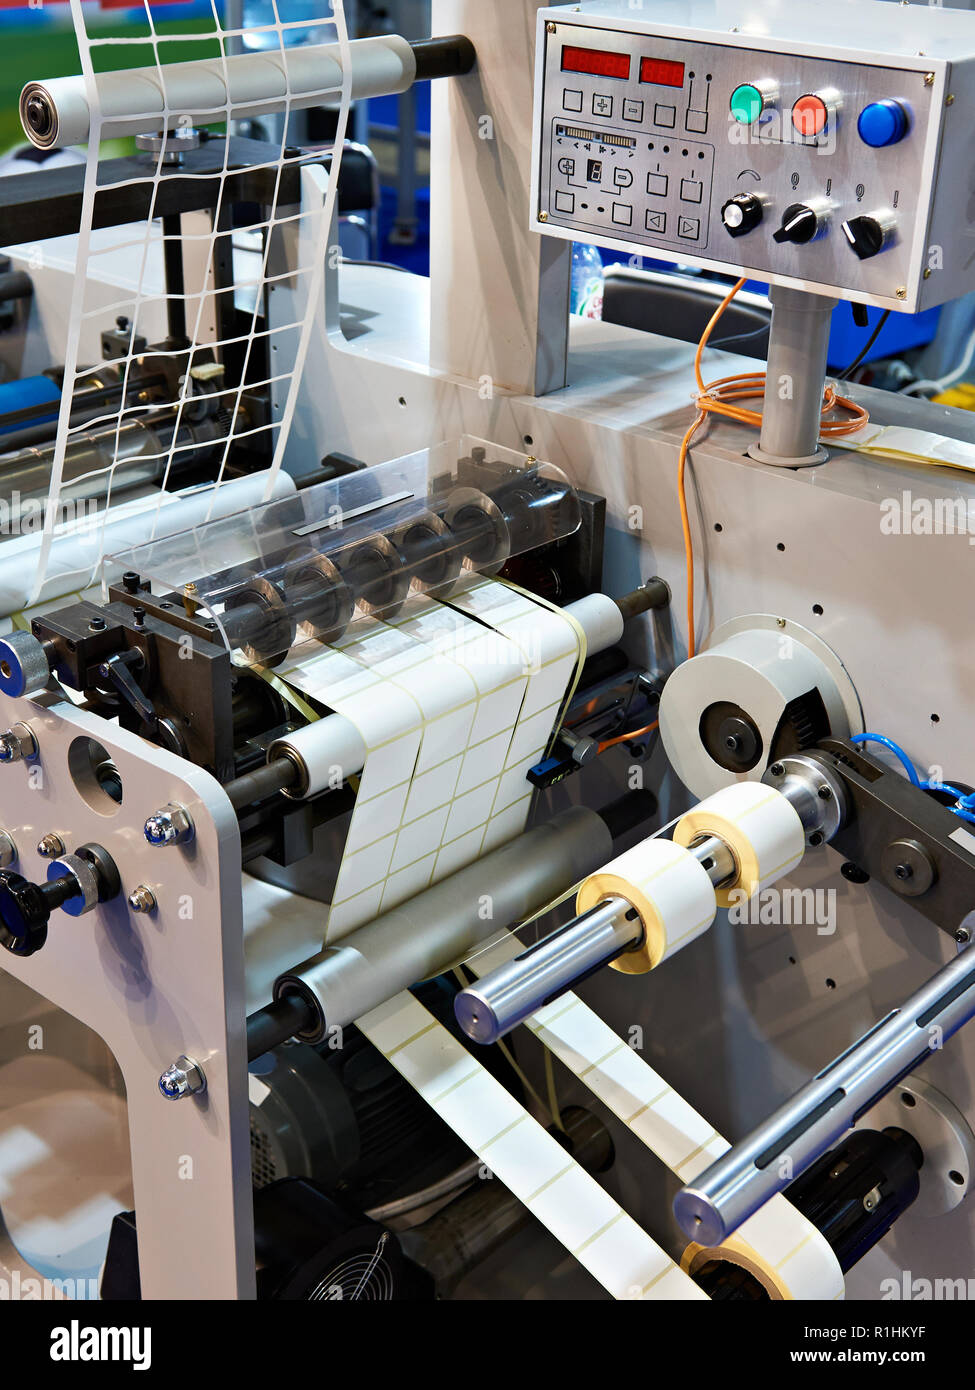 Rotary die cutting machine with slitting blade system - Stock Image